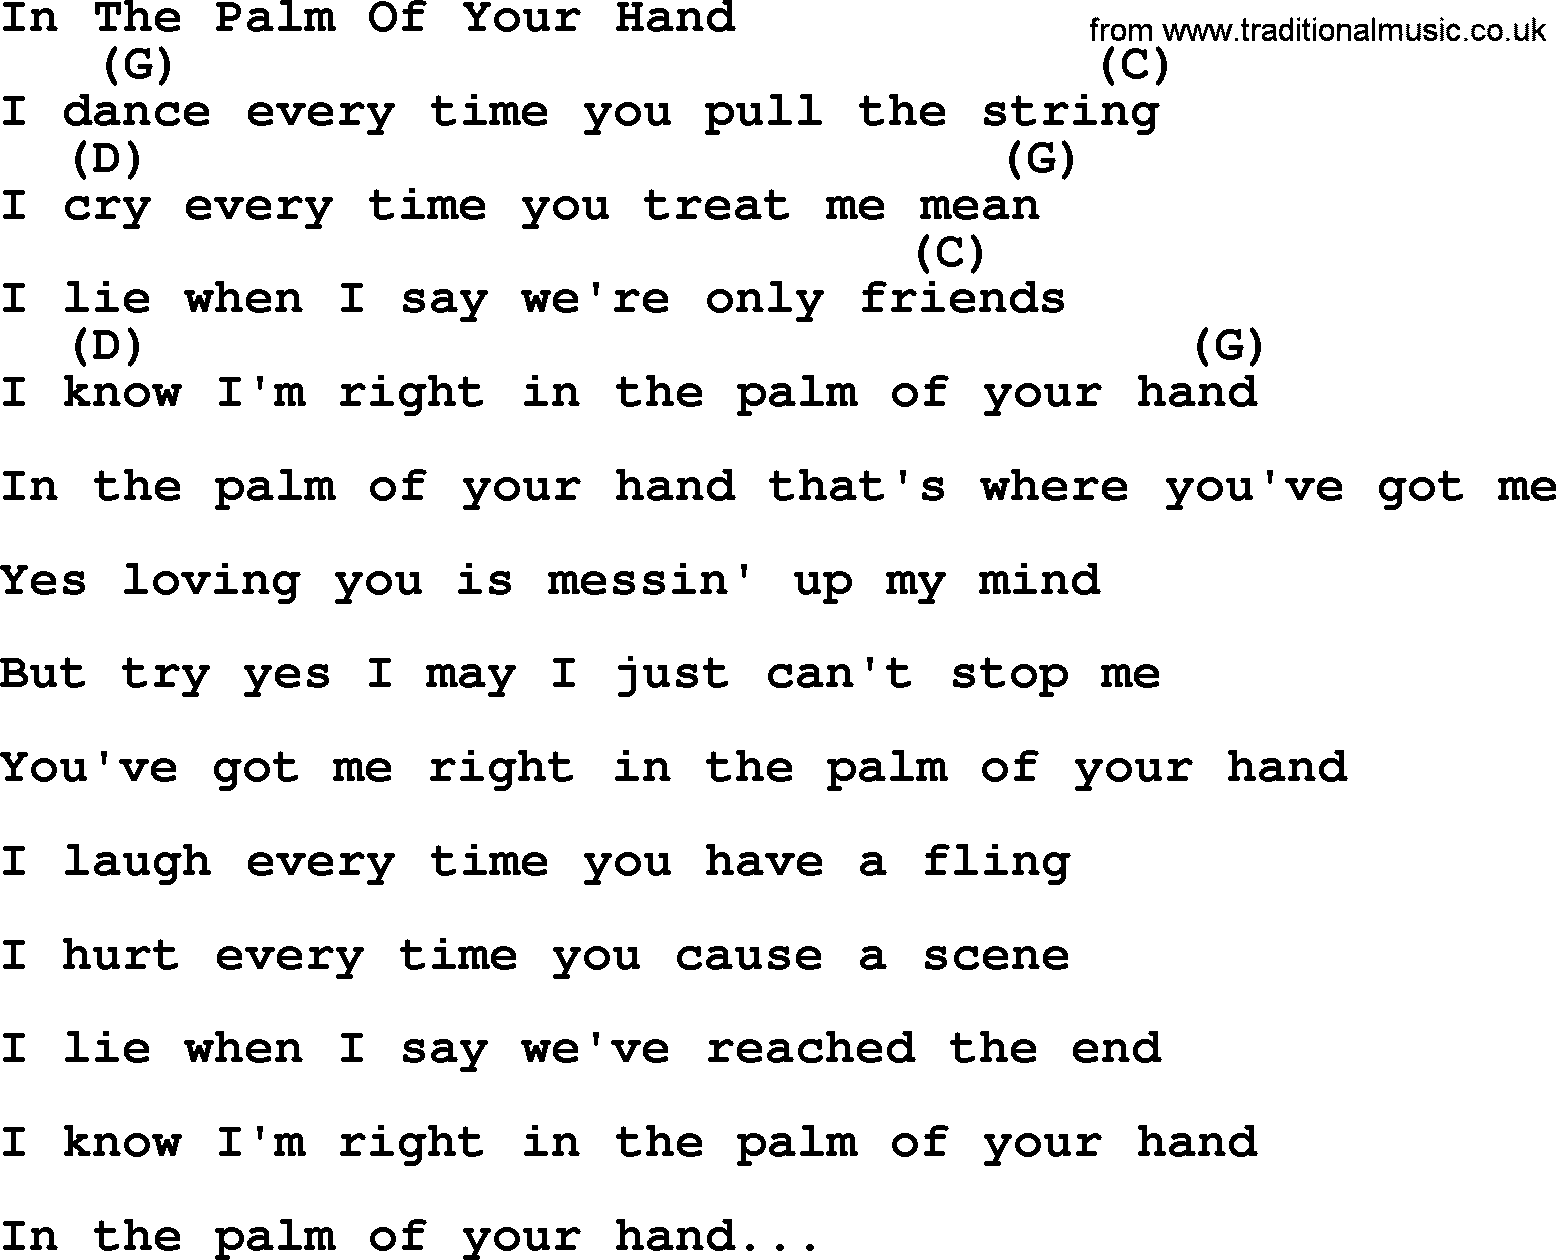 In The Palm Of Your Hand - Bluegrass lyrics with chords